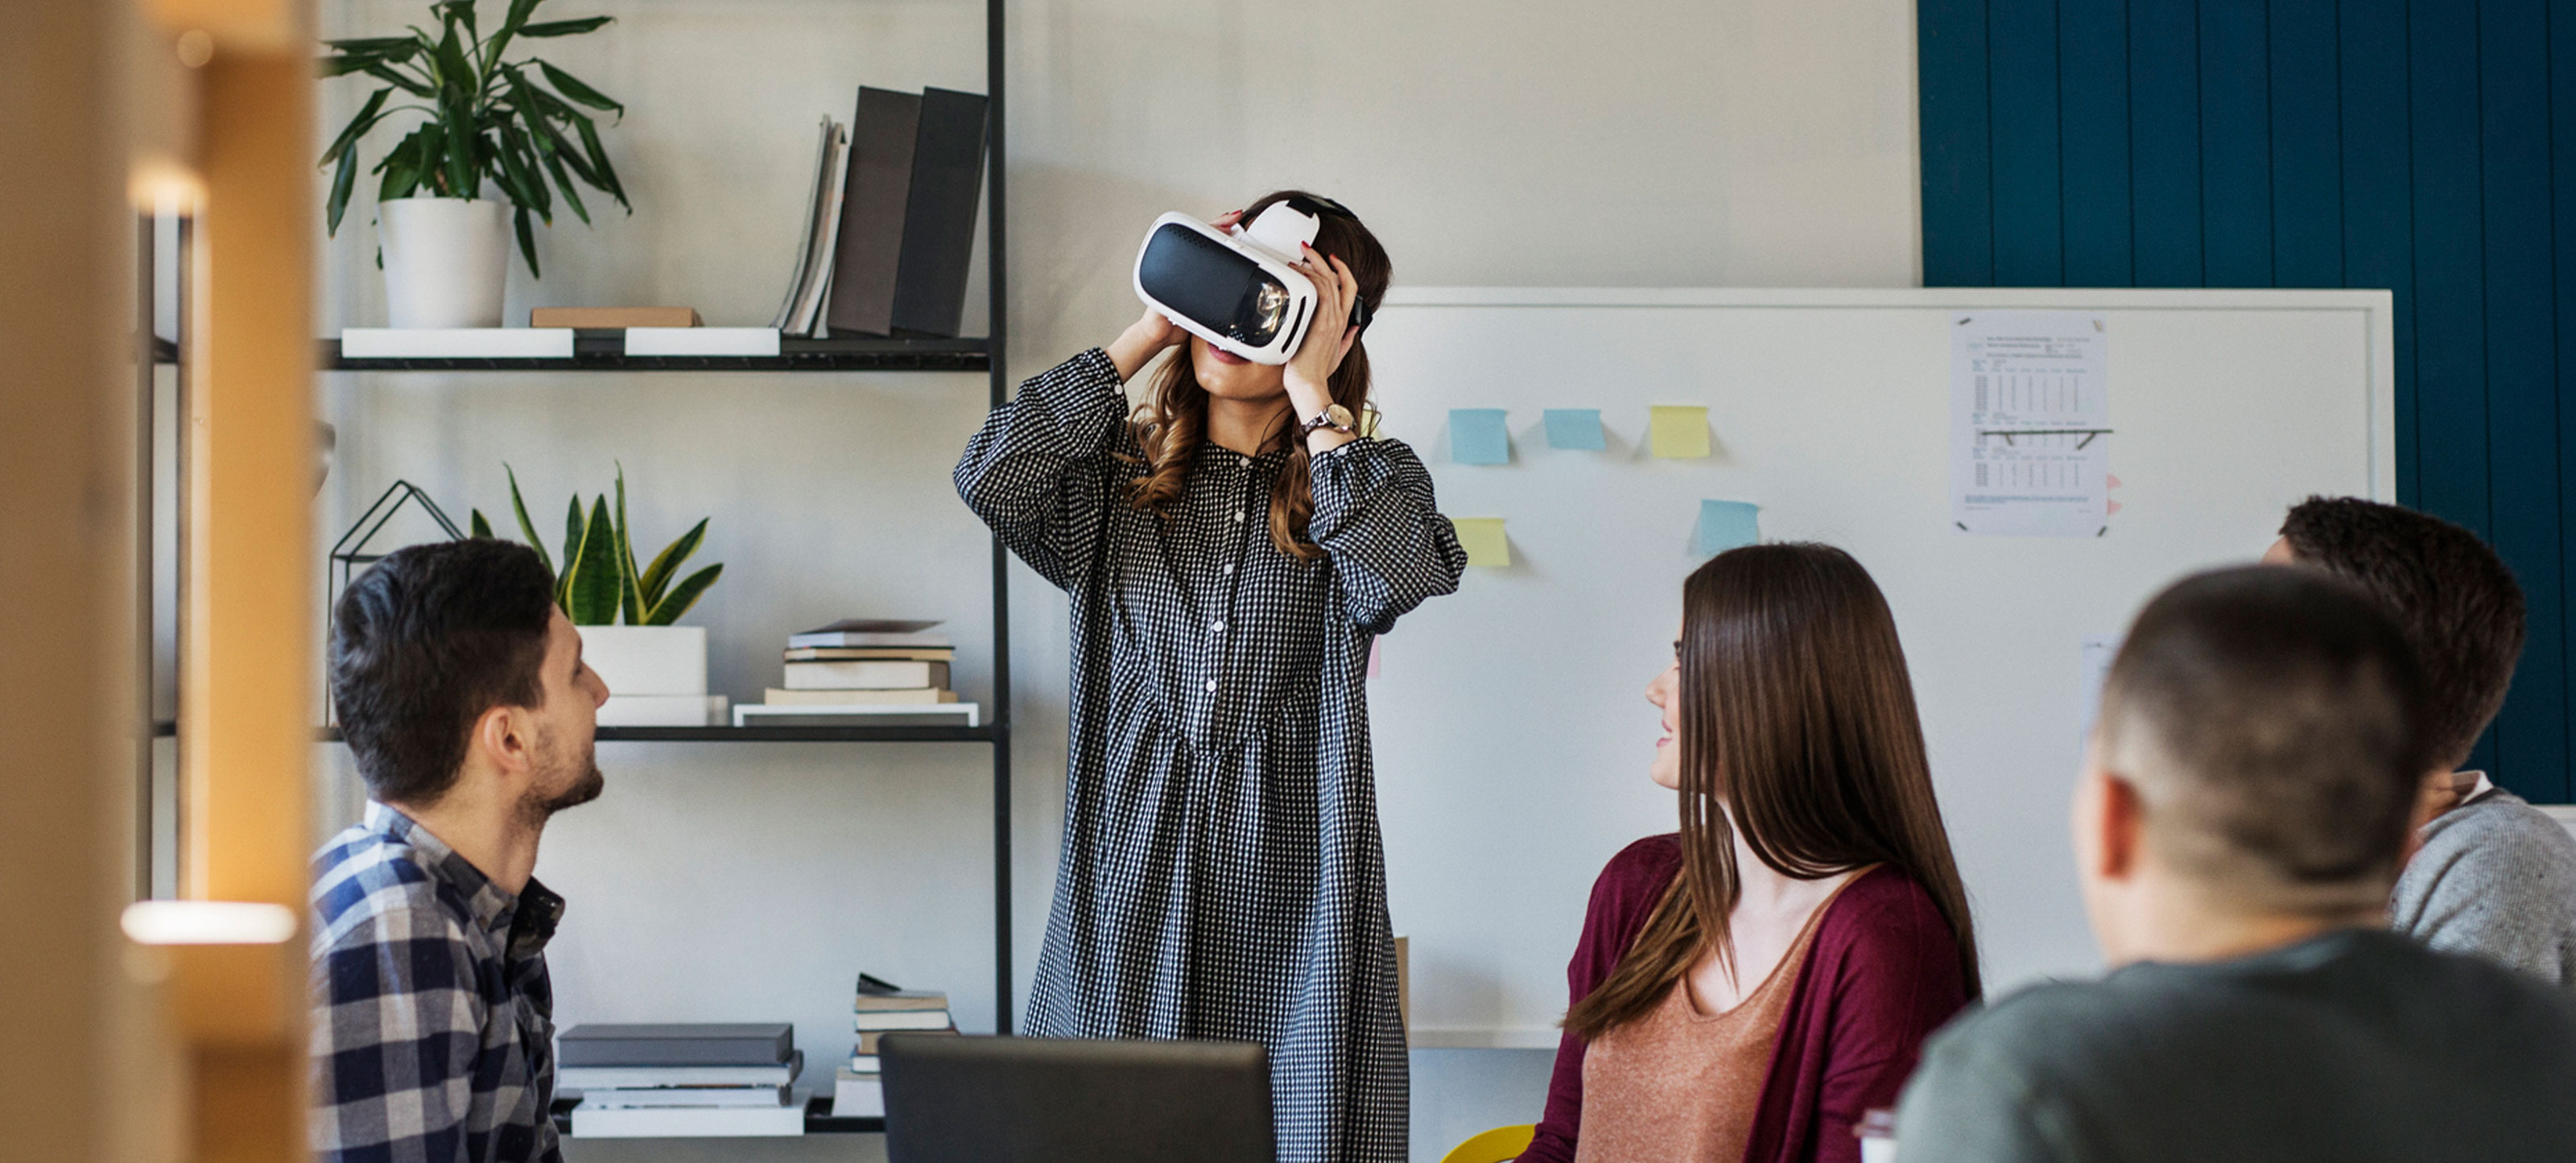 Medical students watch a classmate use a virtual reality headset.